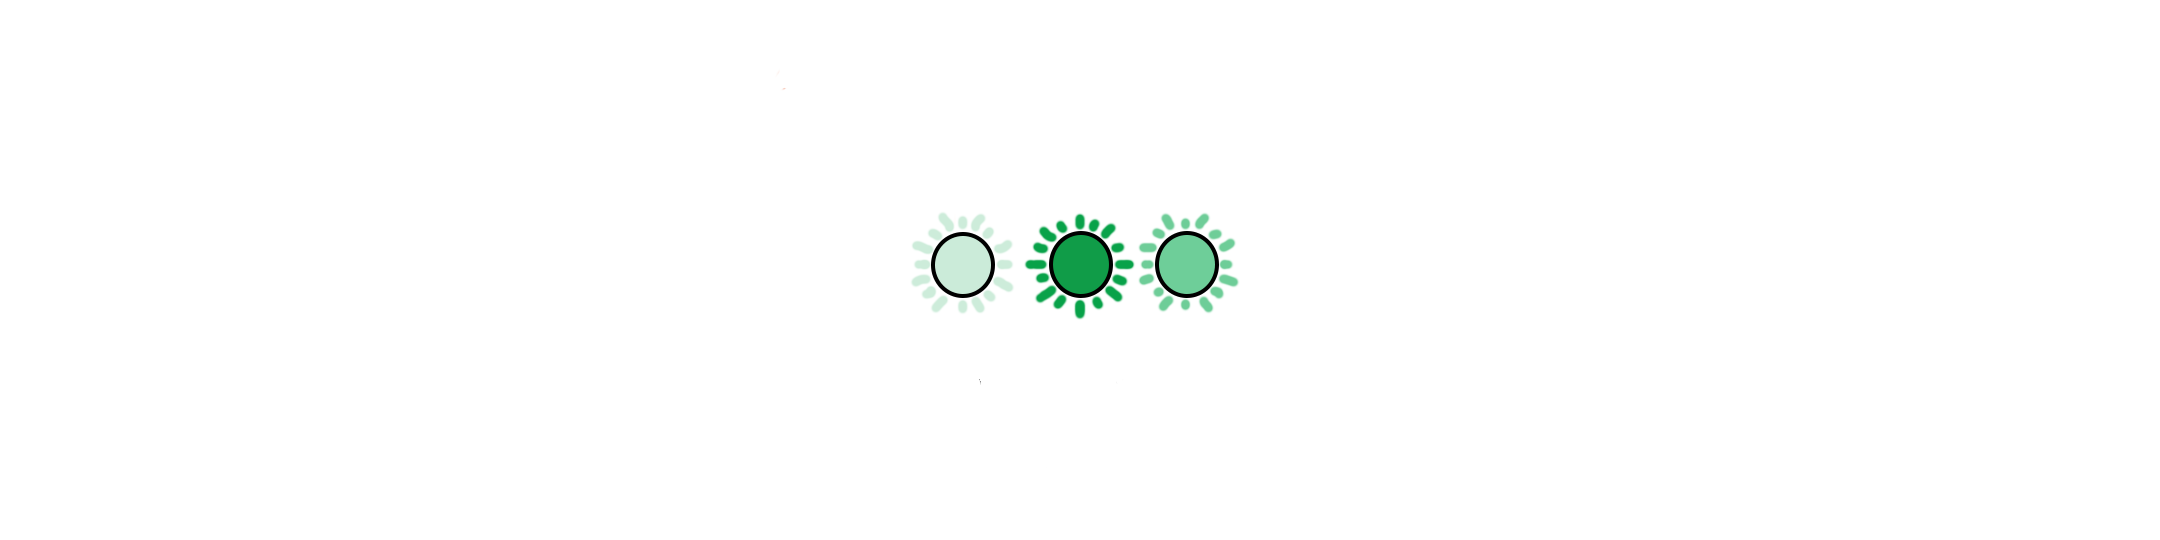 Jazzed Green Dots.png